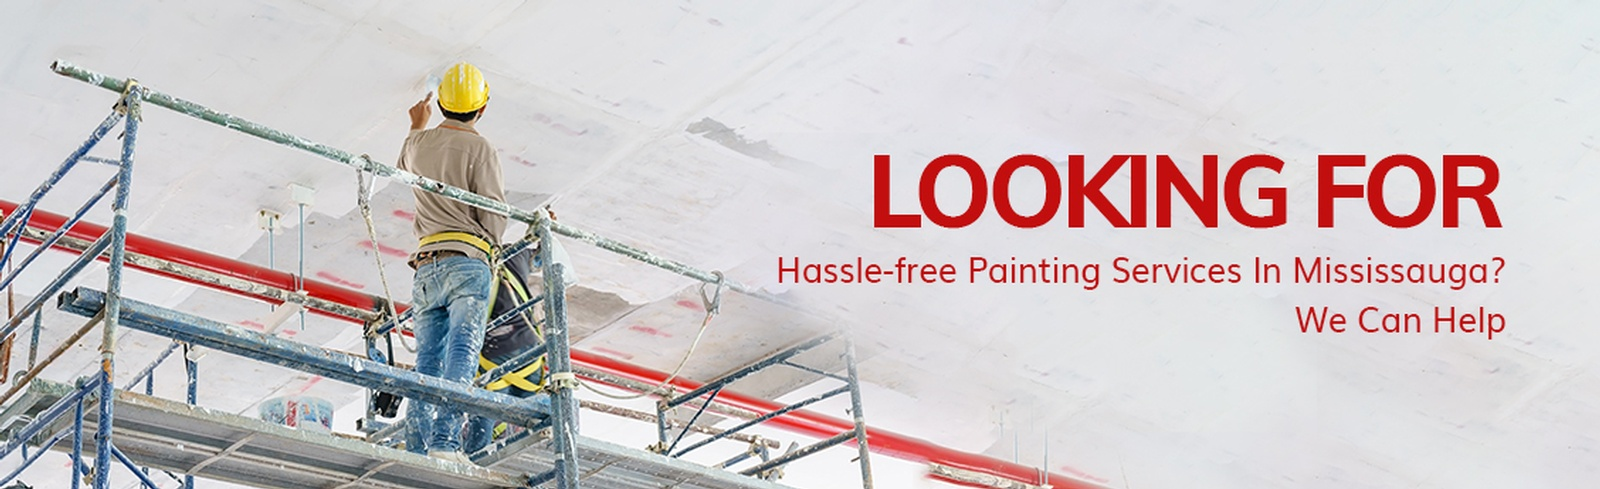 Looking For Hassle-free Painting Services In Mississauga